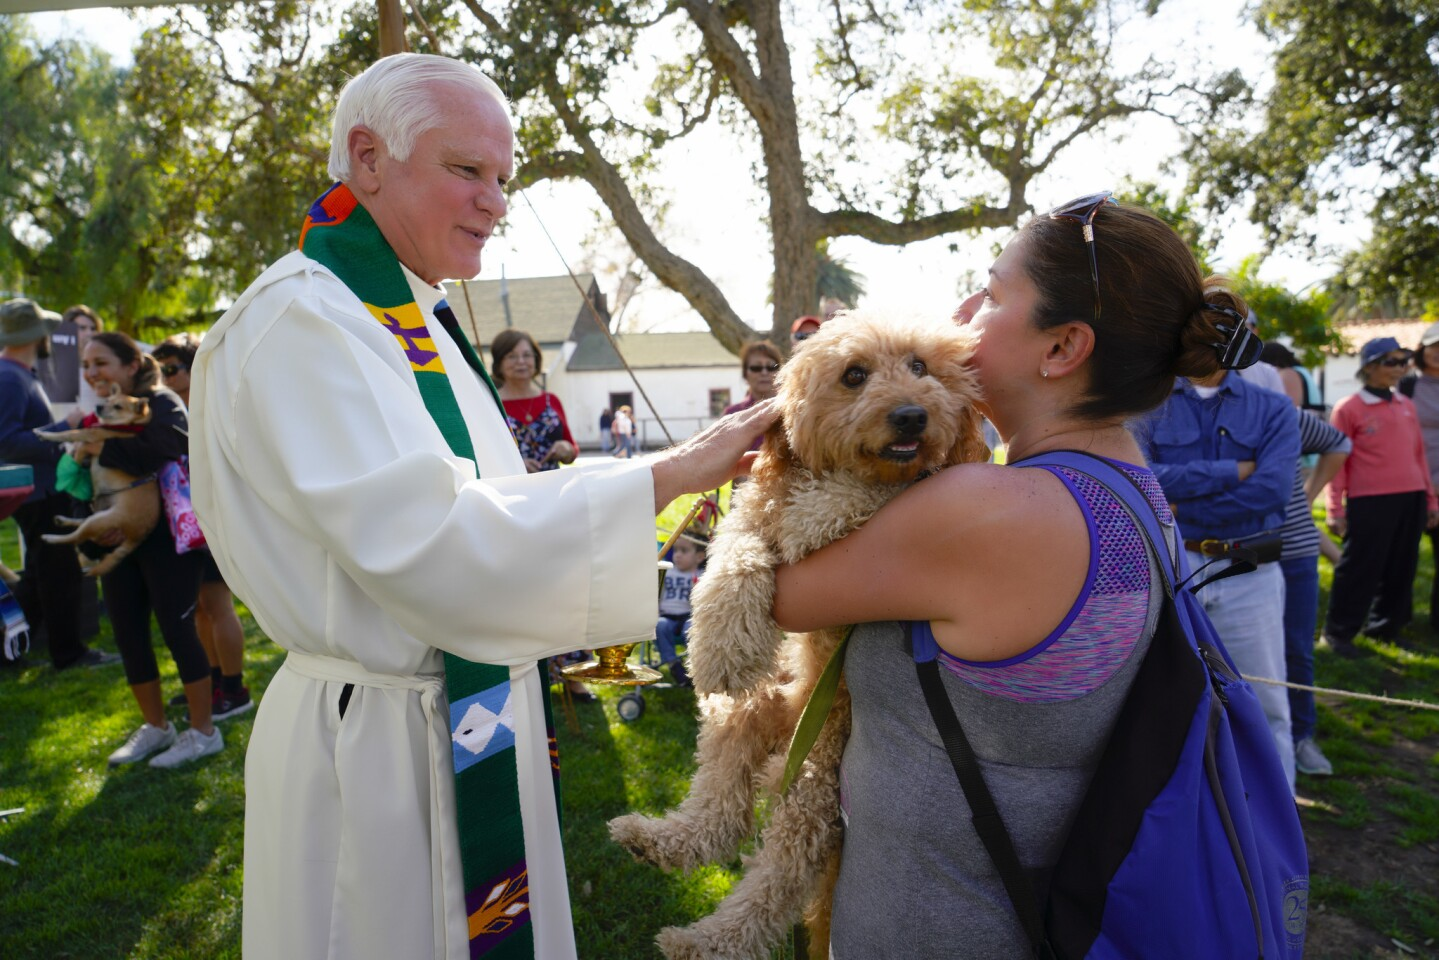 Rev. Michael J. Sinor from Immaculate Conception Church in Old Town blessed Mary Perlaki-NeeoyÕs dog, Koufax annual Blessing of the Animals during the Fiesta De Reyes in Old Town on Sunday.